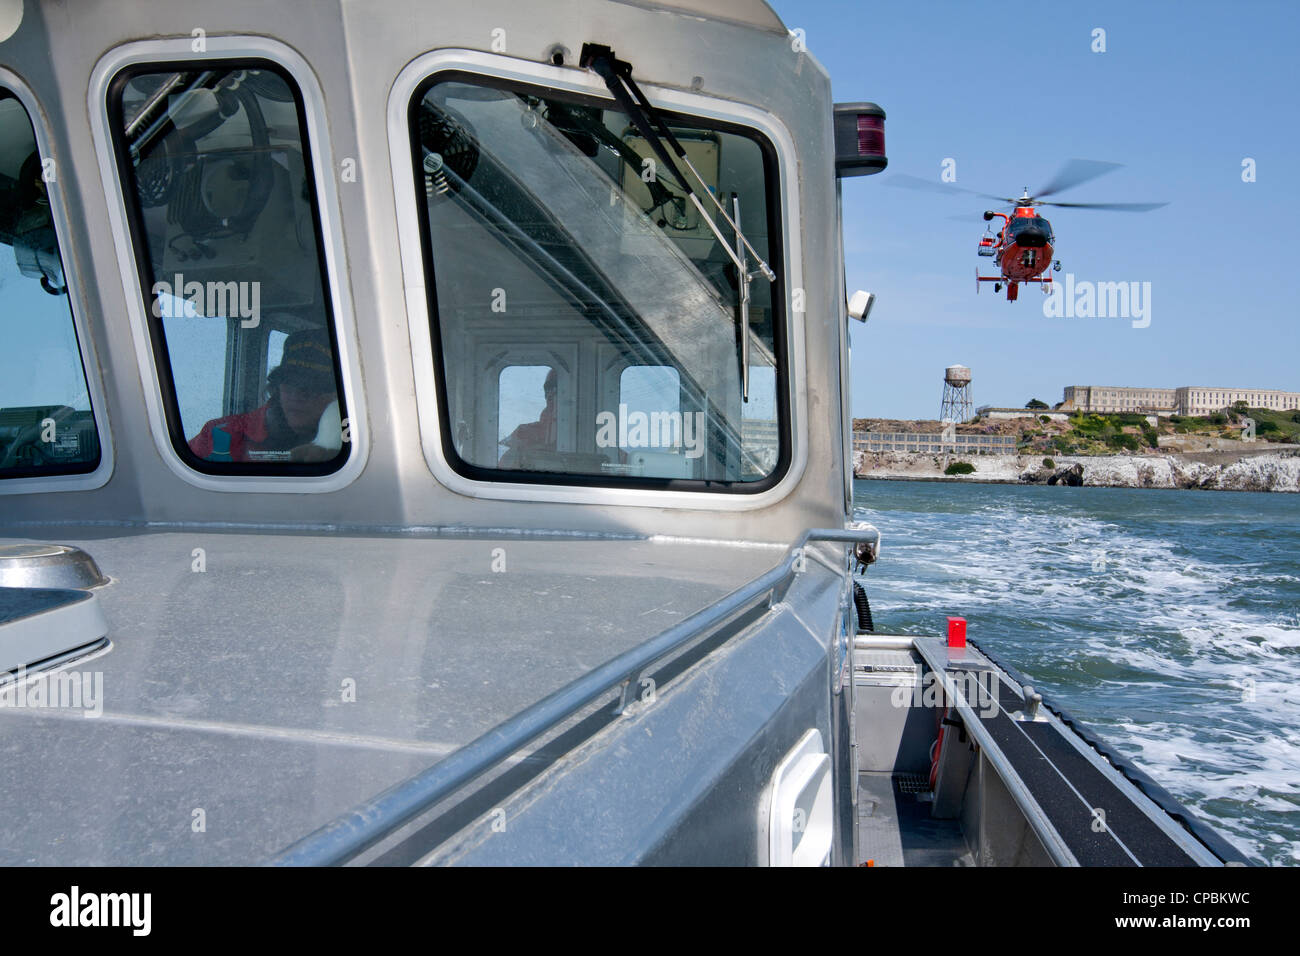 A United States Coast Guard HH-65C Dolphin helicopter approaches a Coast Guard Auxiliary vessel. - Stock Image